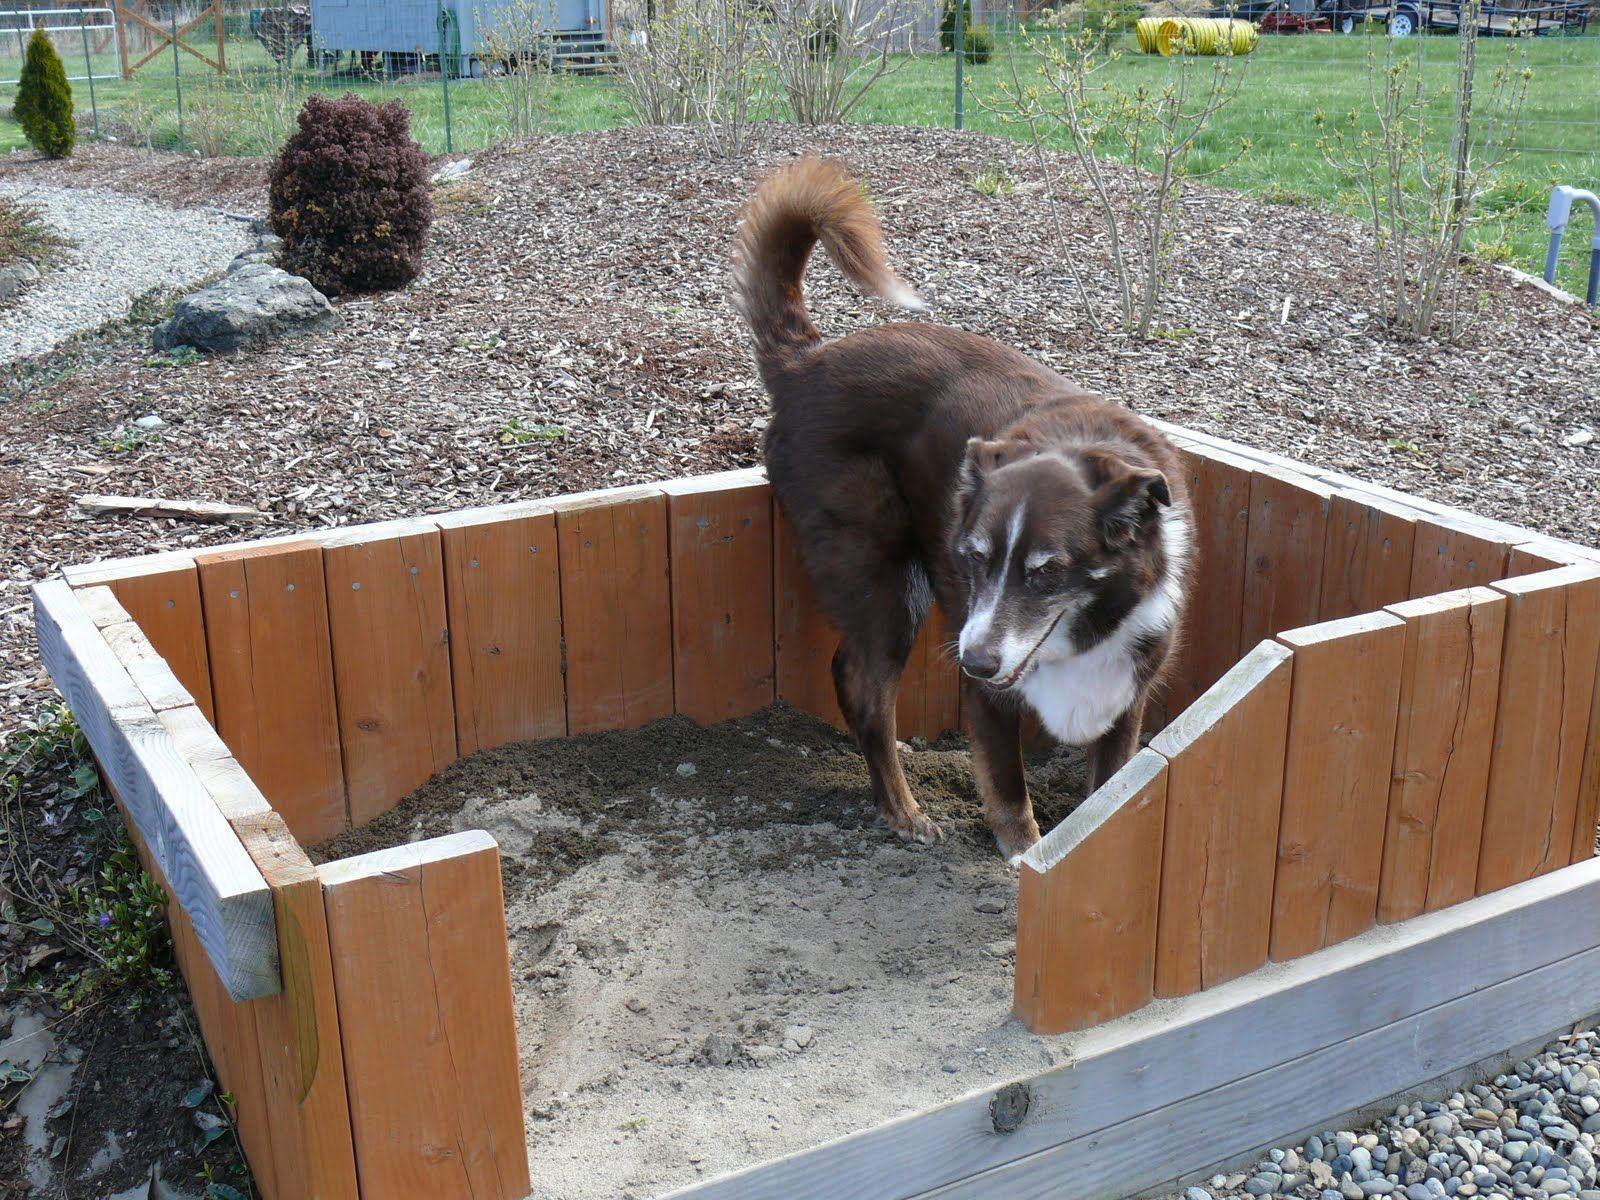 Garden Ideas For Dogs digging dog? create a sandbox just for his digging! i like the